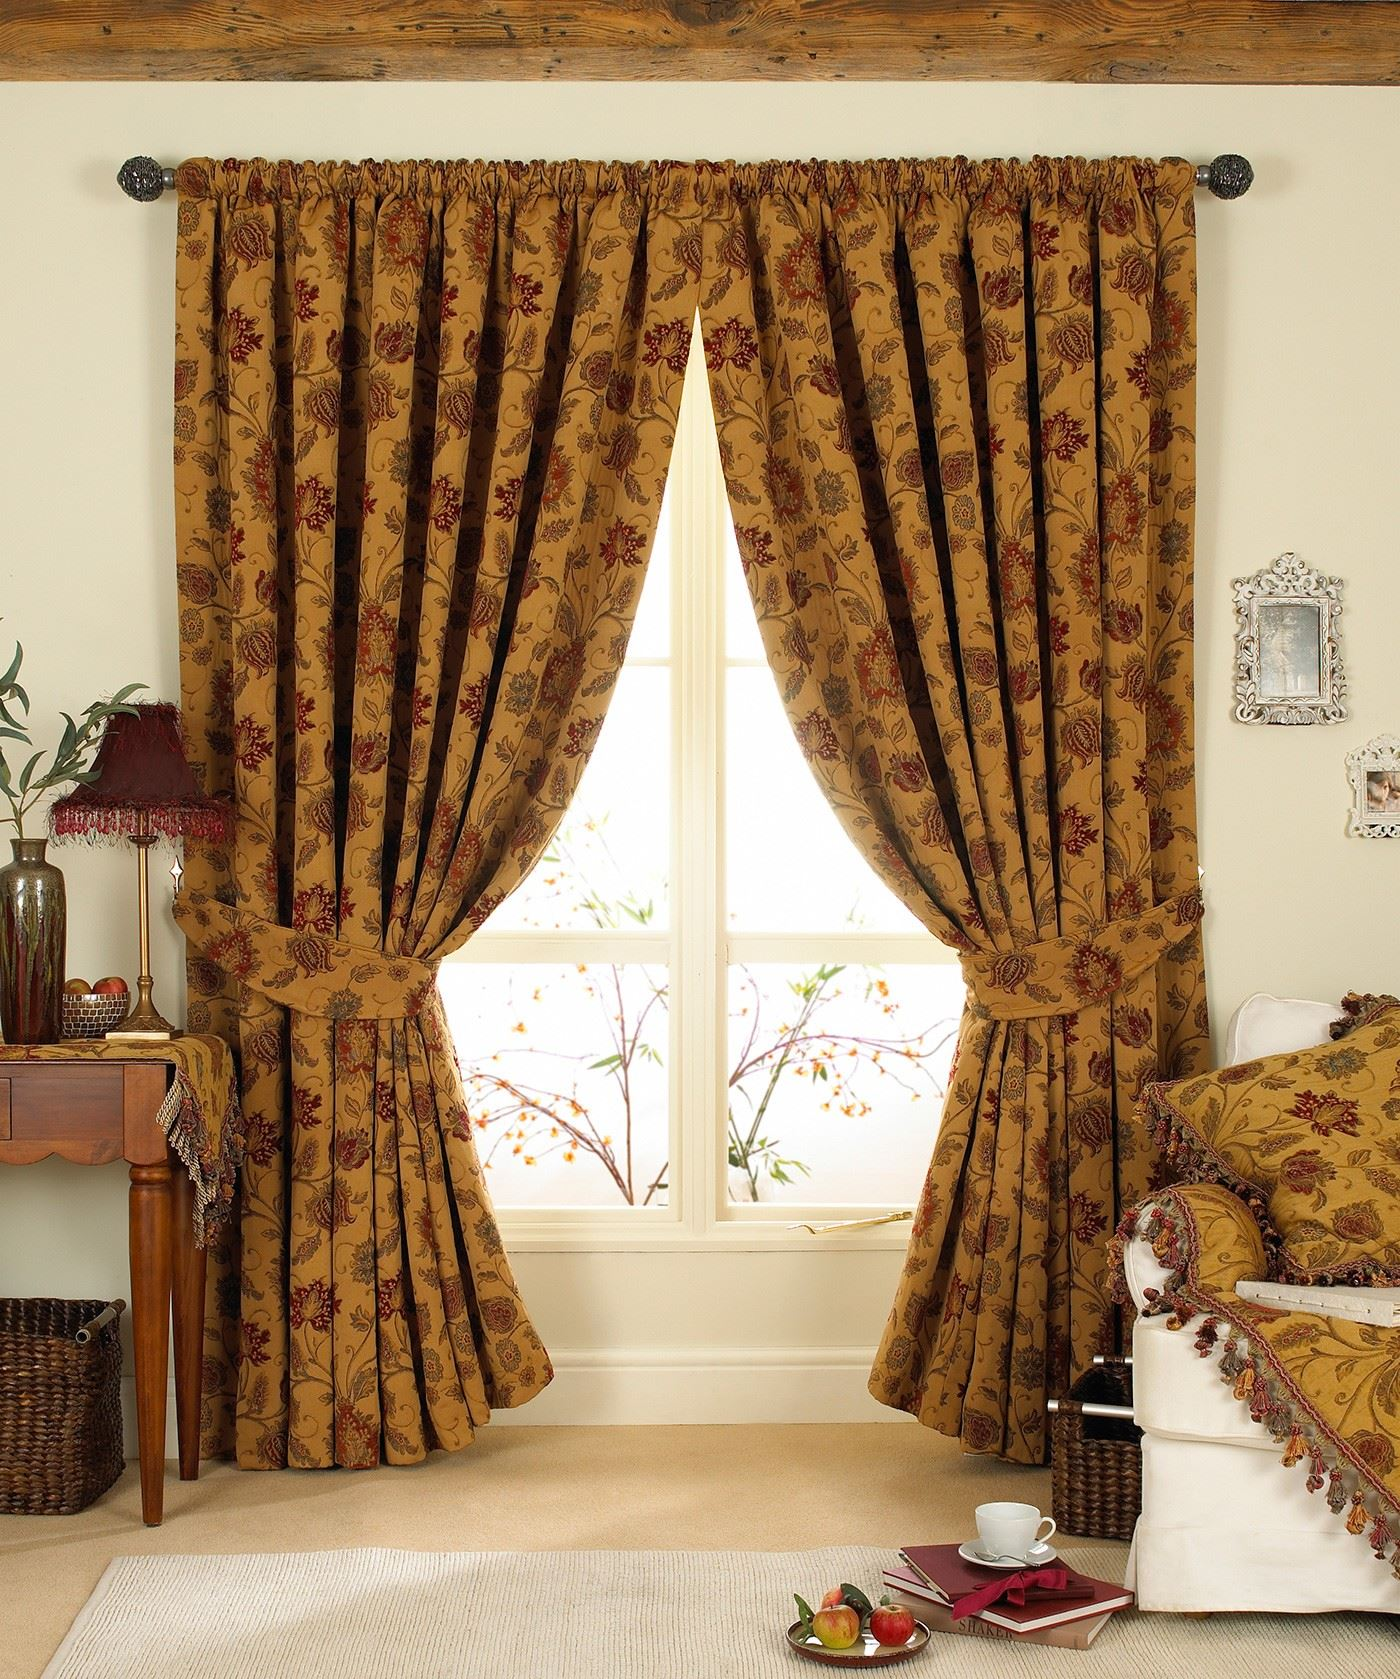 curtains panels concept and things window green red image greennd n sale curtain for phenomenal gold coverings linens plaid